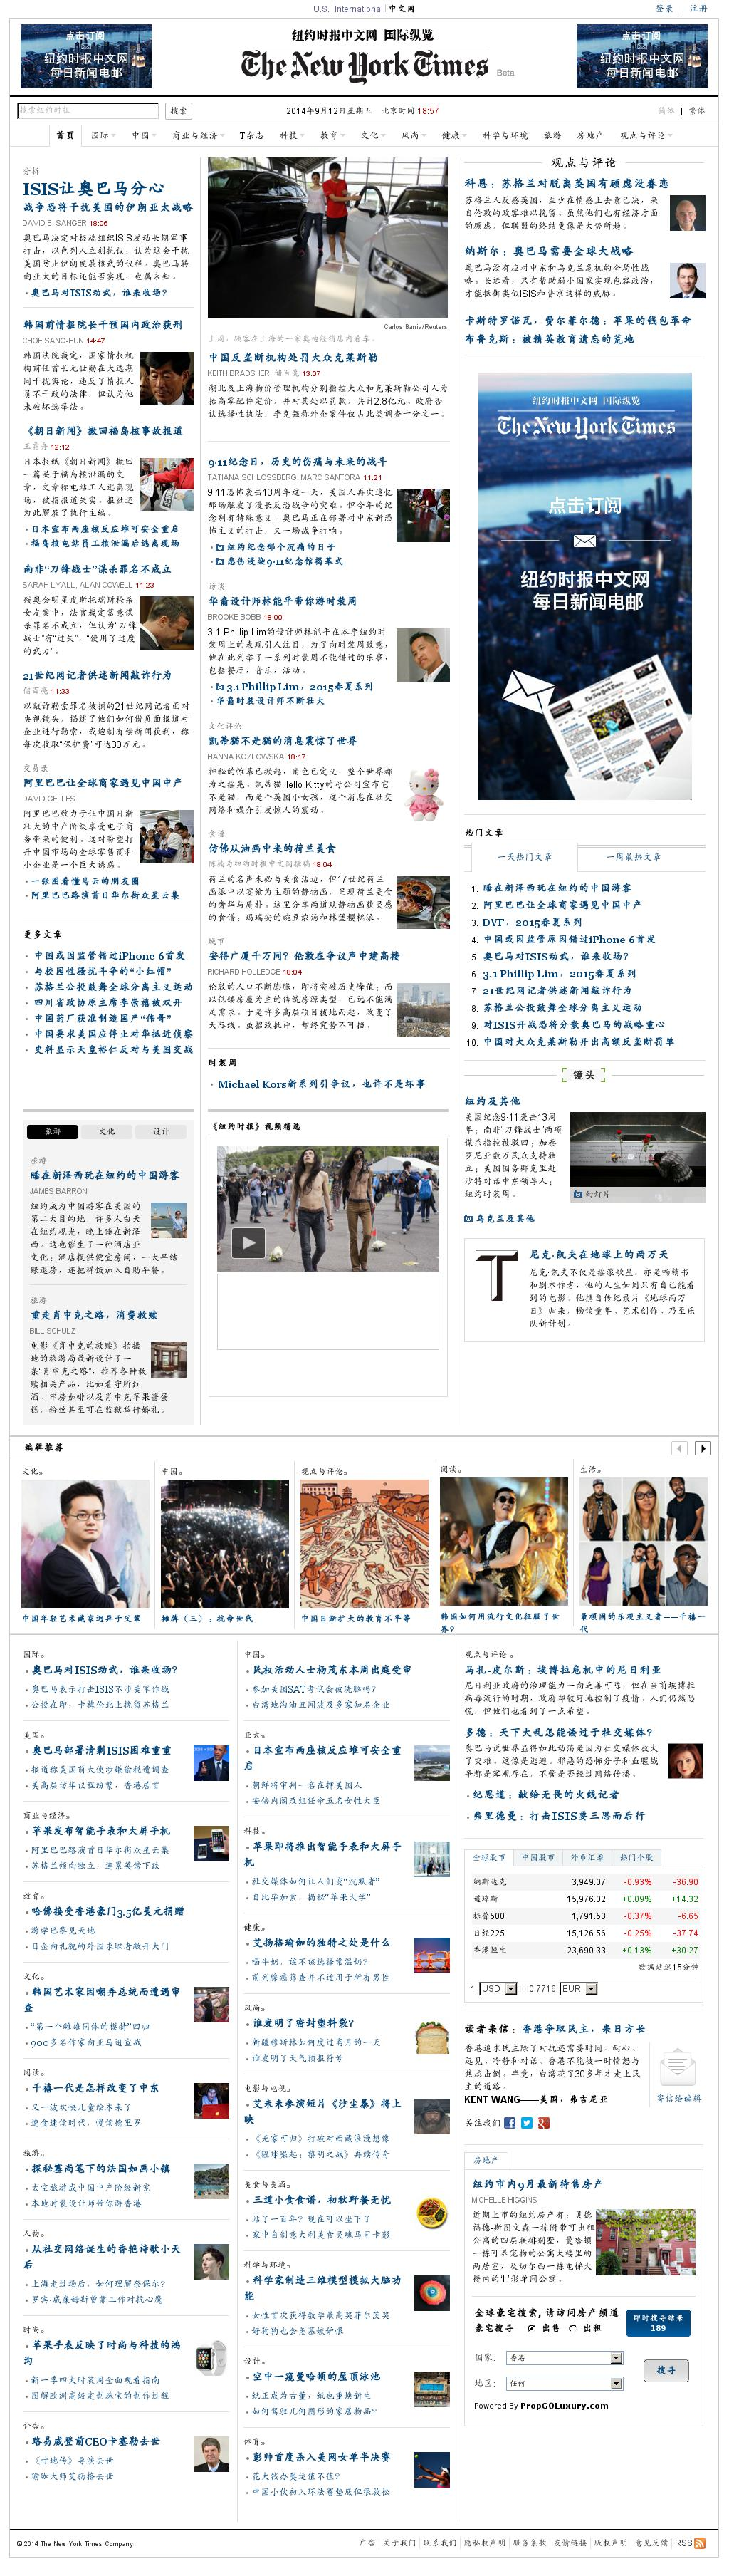 The New York Times (Chinese) at Saturday Sept. 13, 2014, 2:17 a.m. UTC